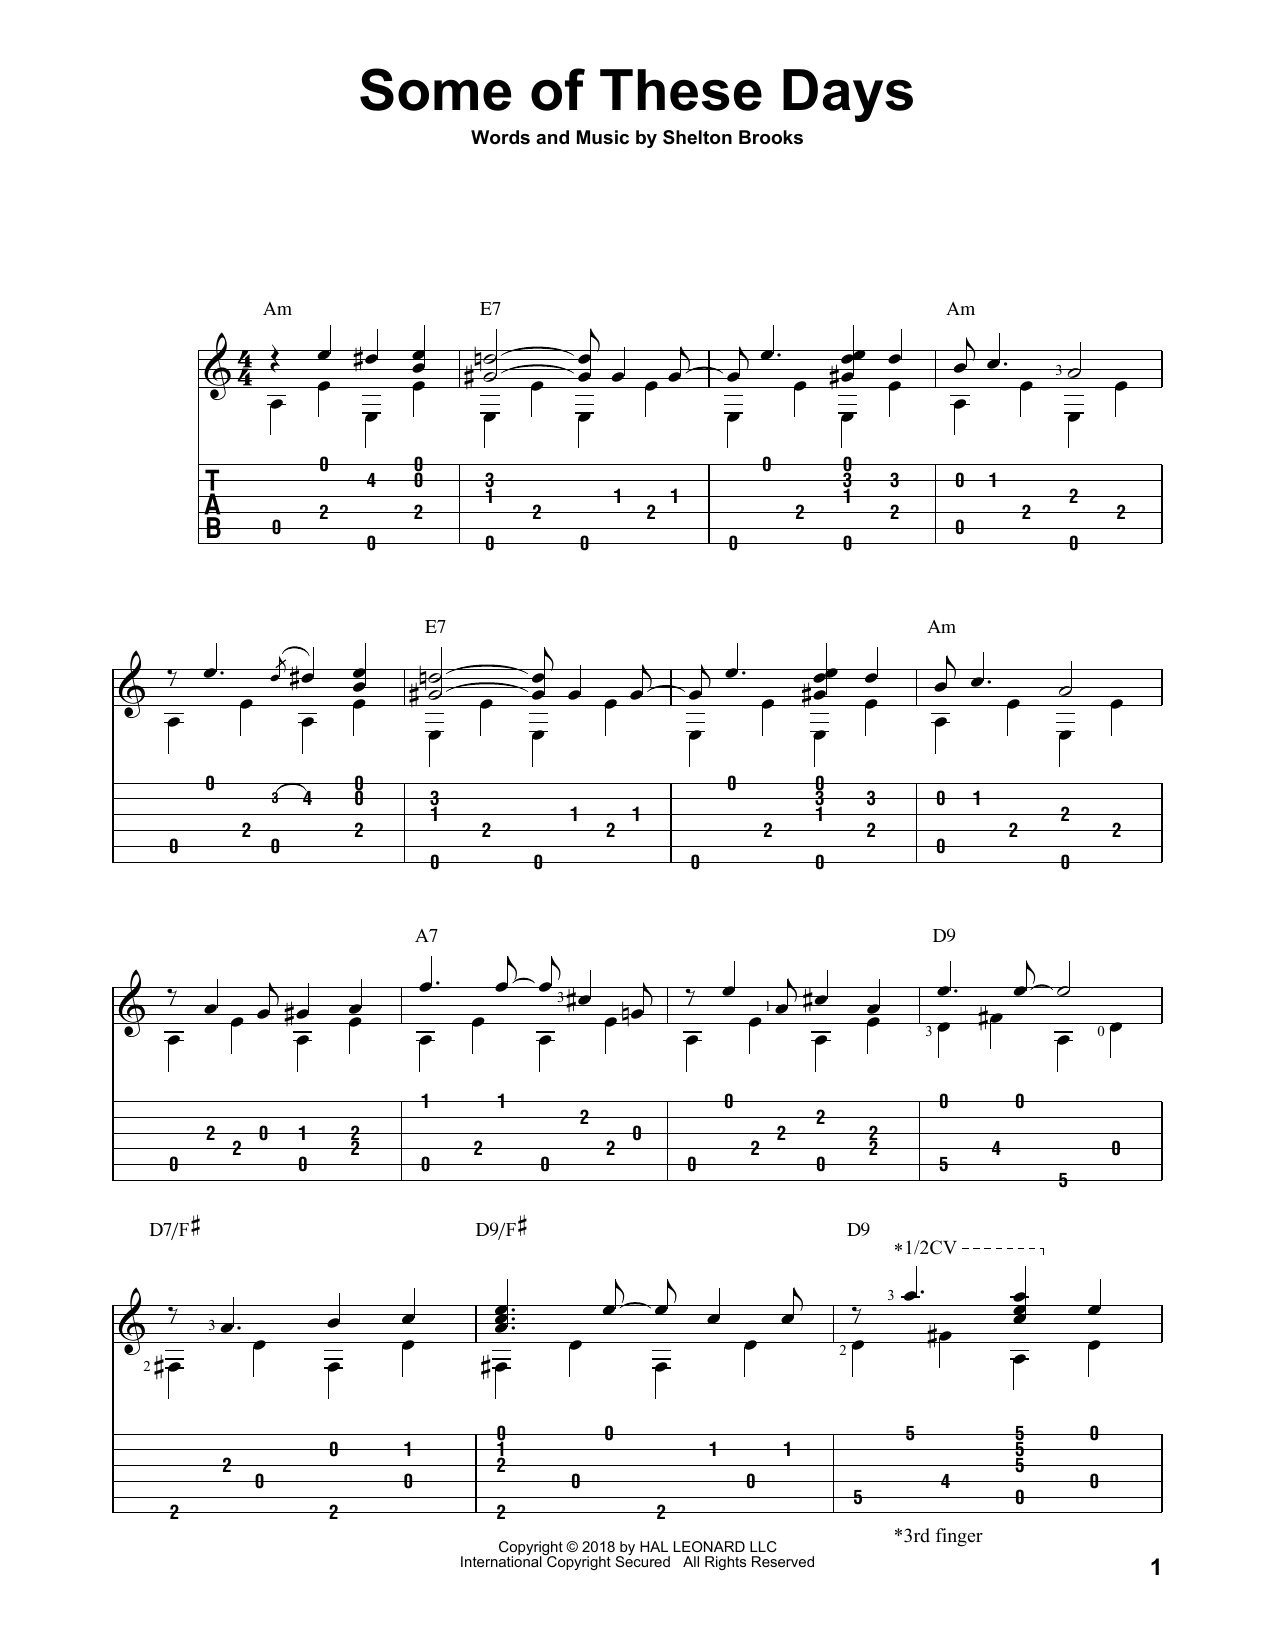 Shelton Brooks Some Of These Days sheet music notes and chords